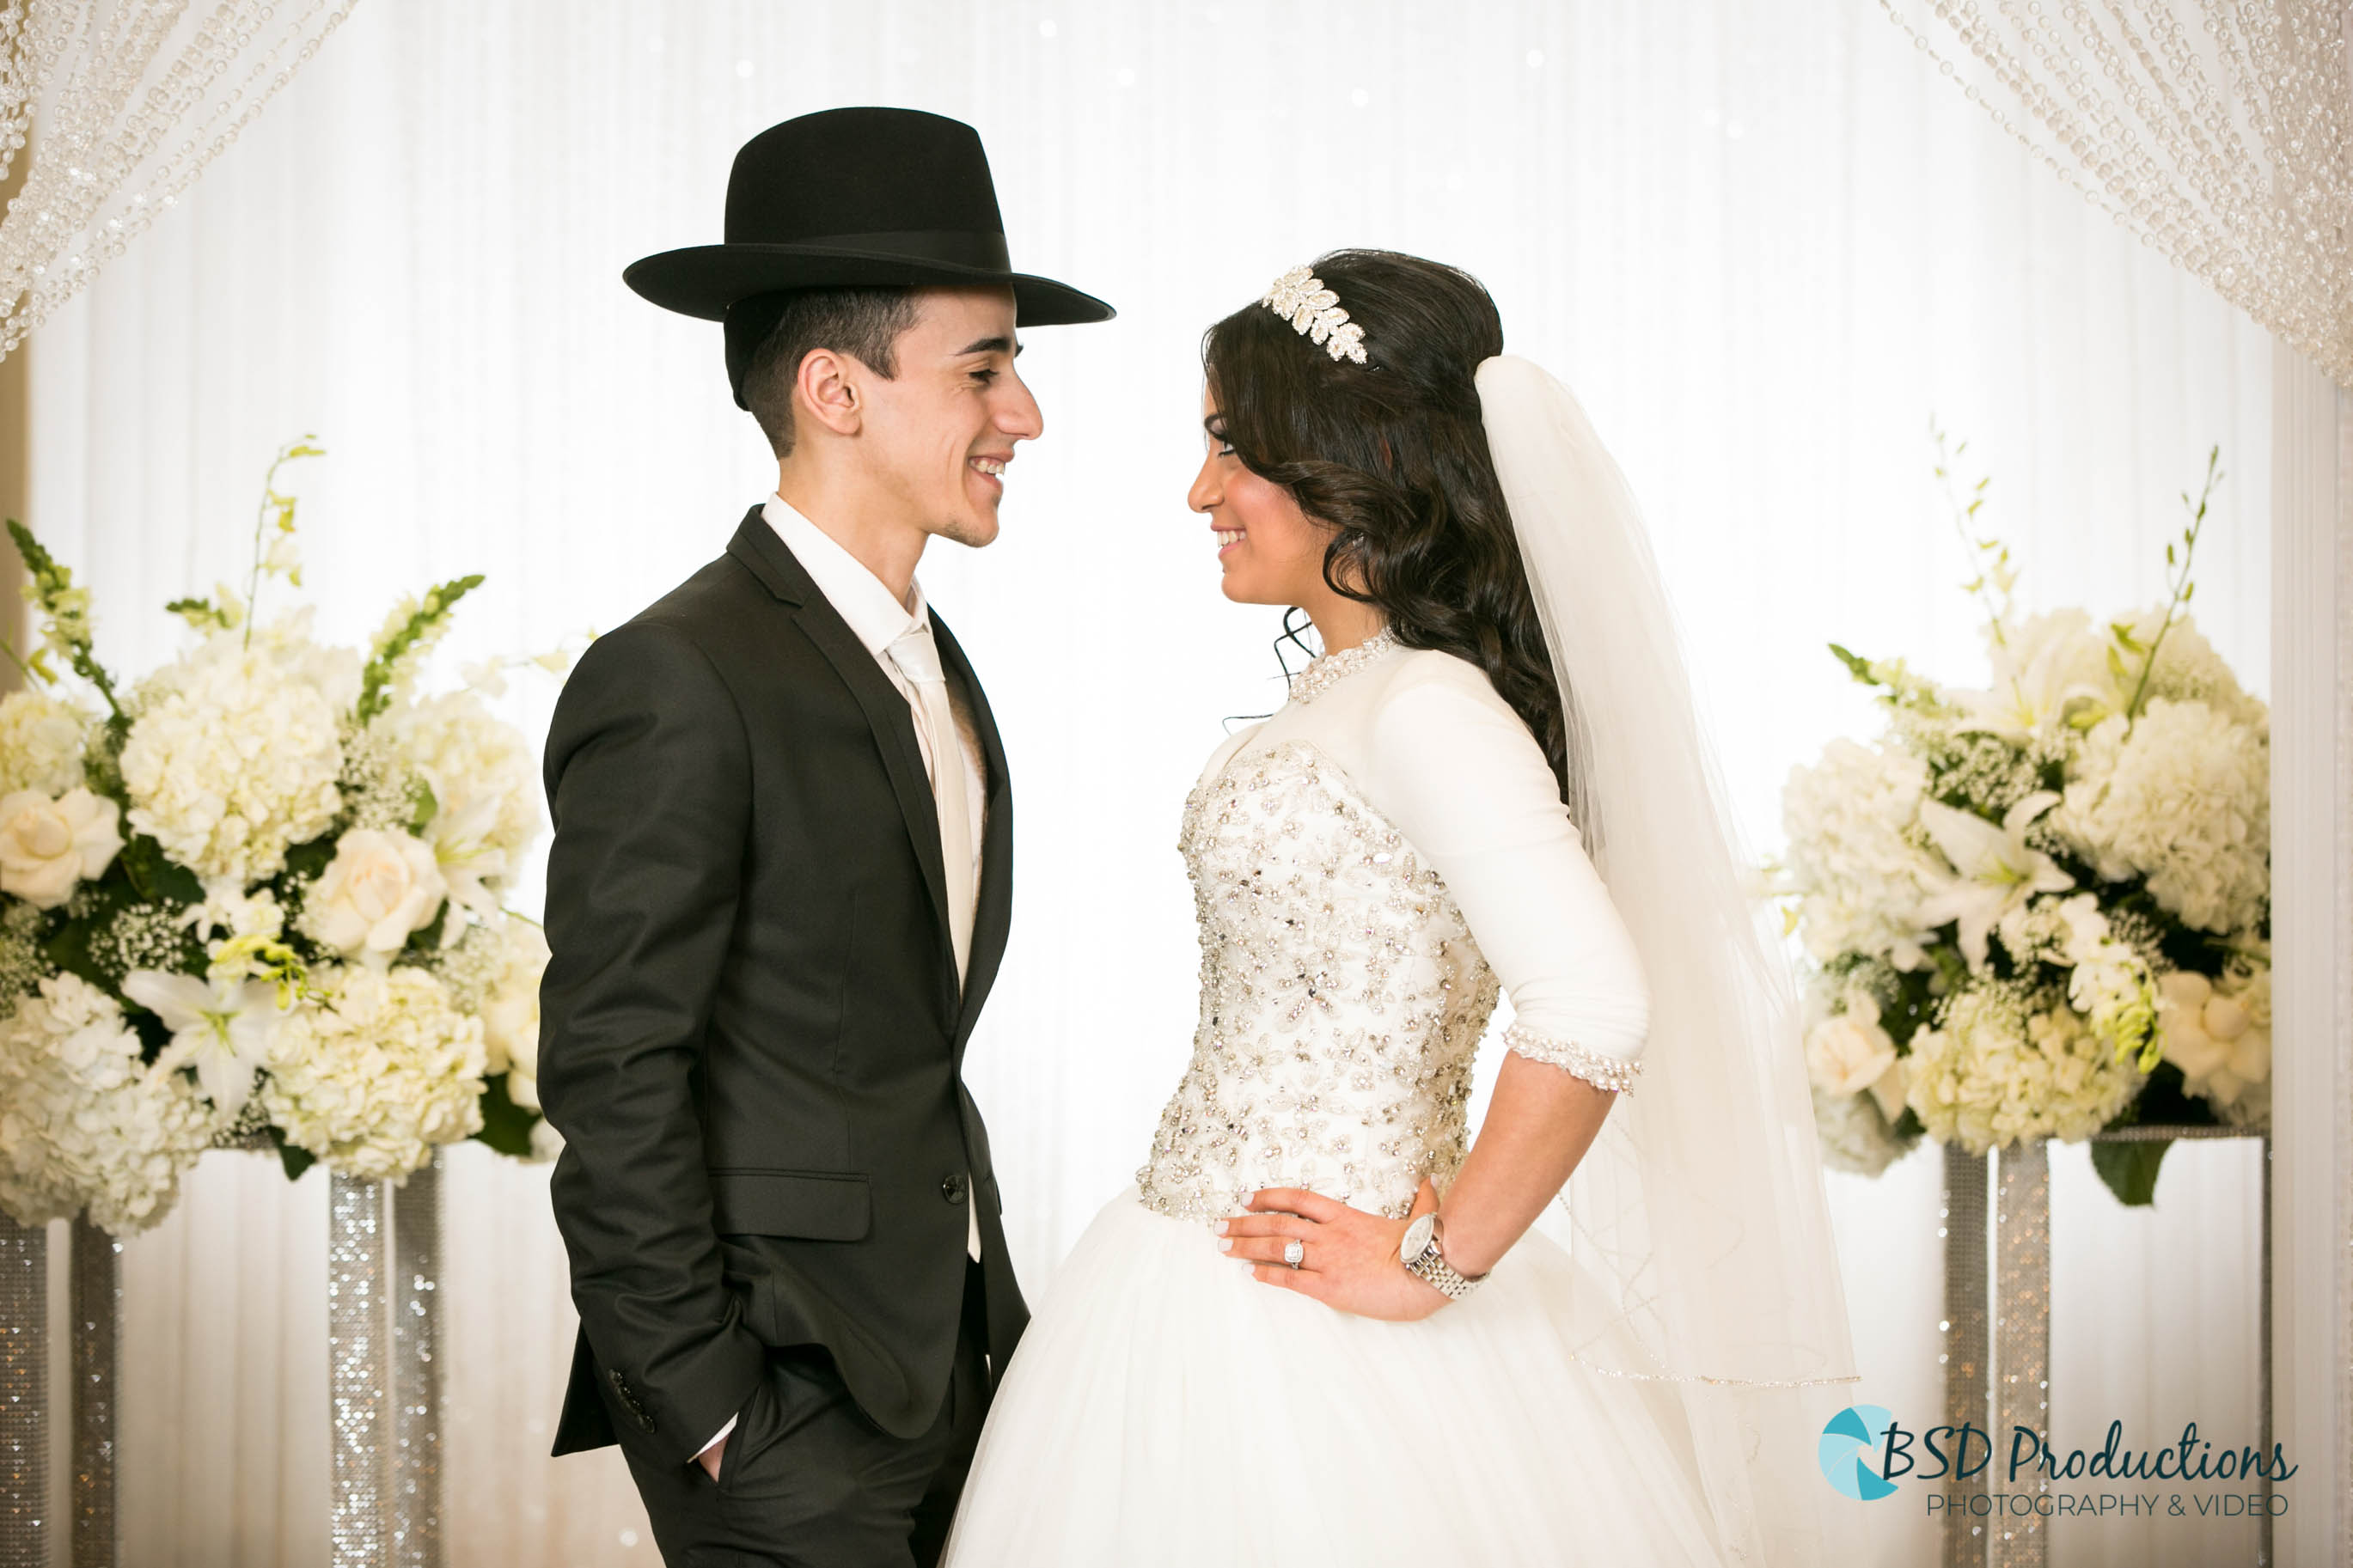 UH5A9191 Wedding – BSD Productions Photography